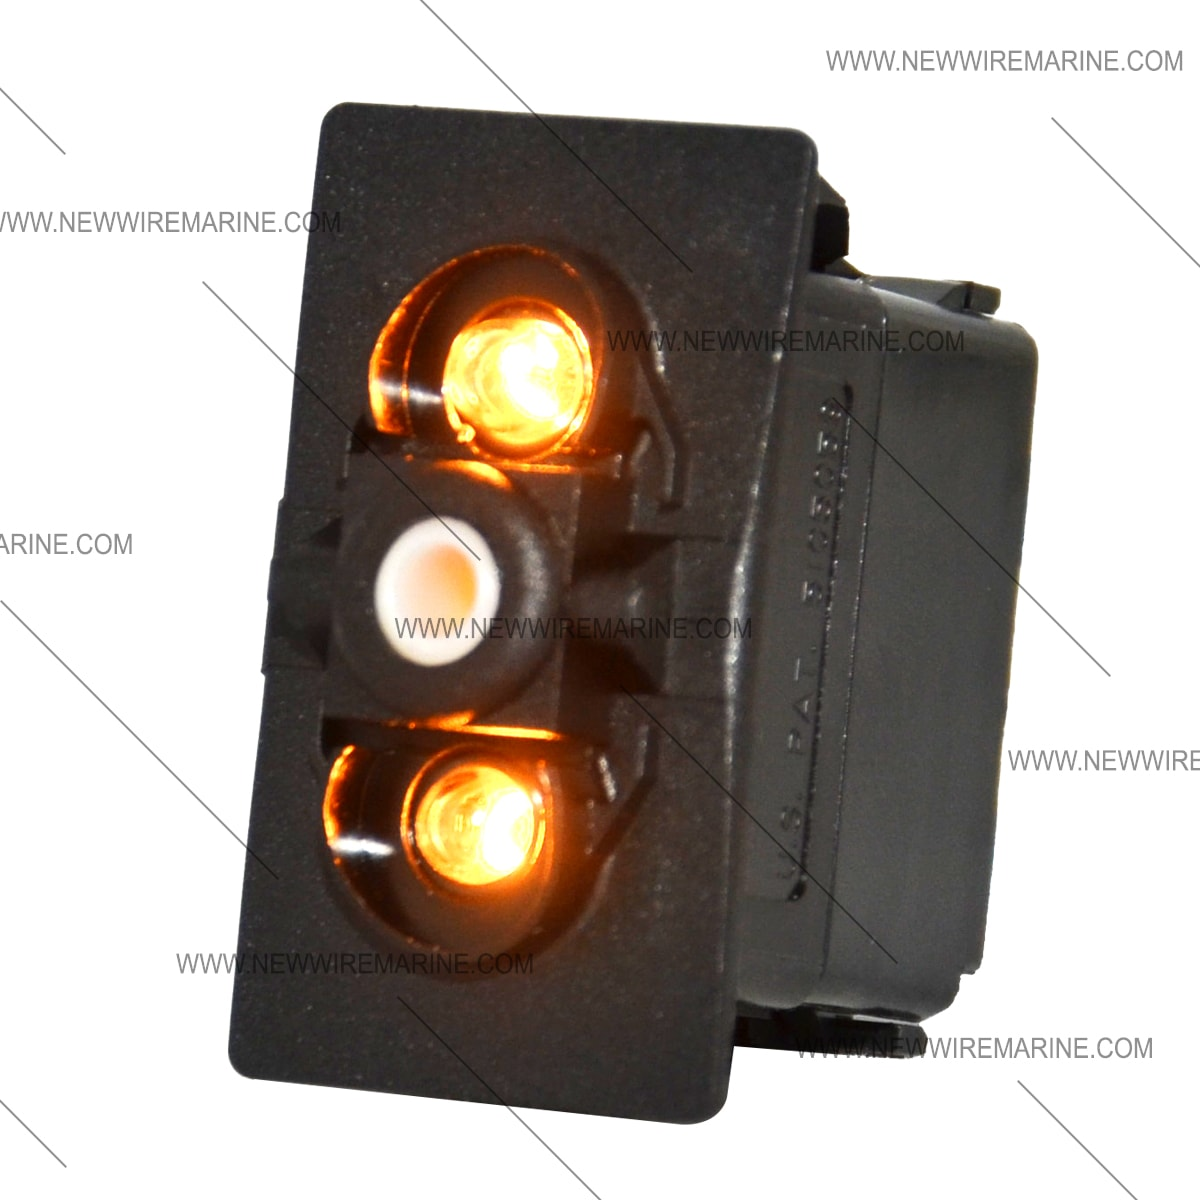 hight resolution of carling double white light rocker switch